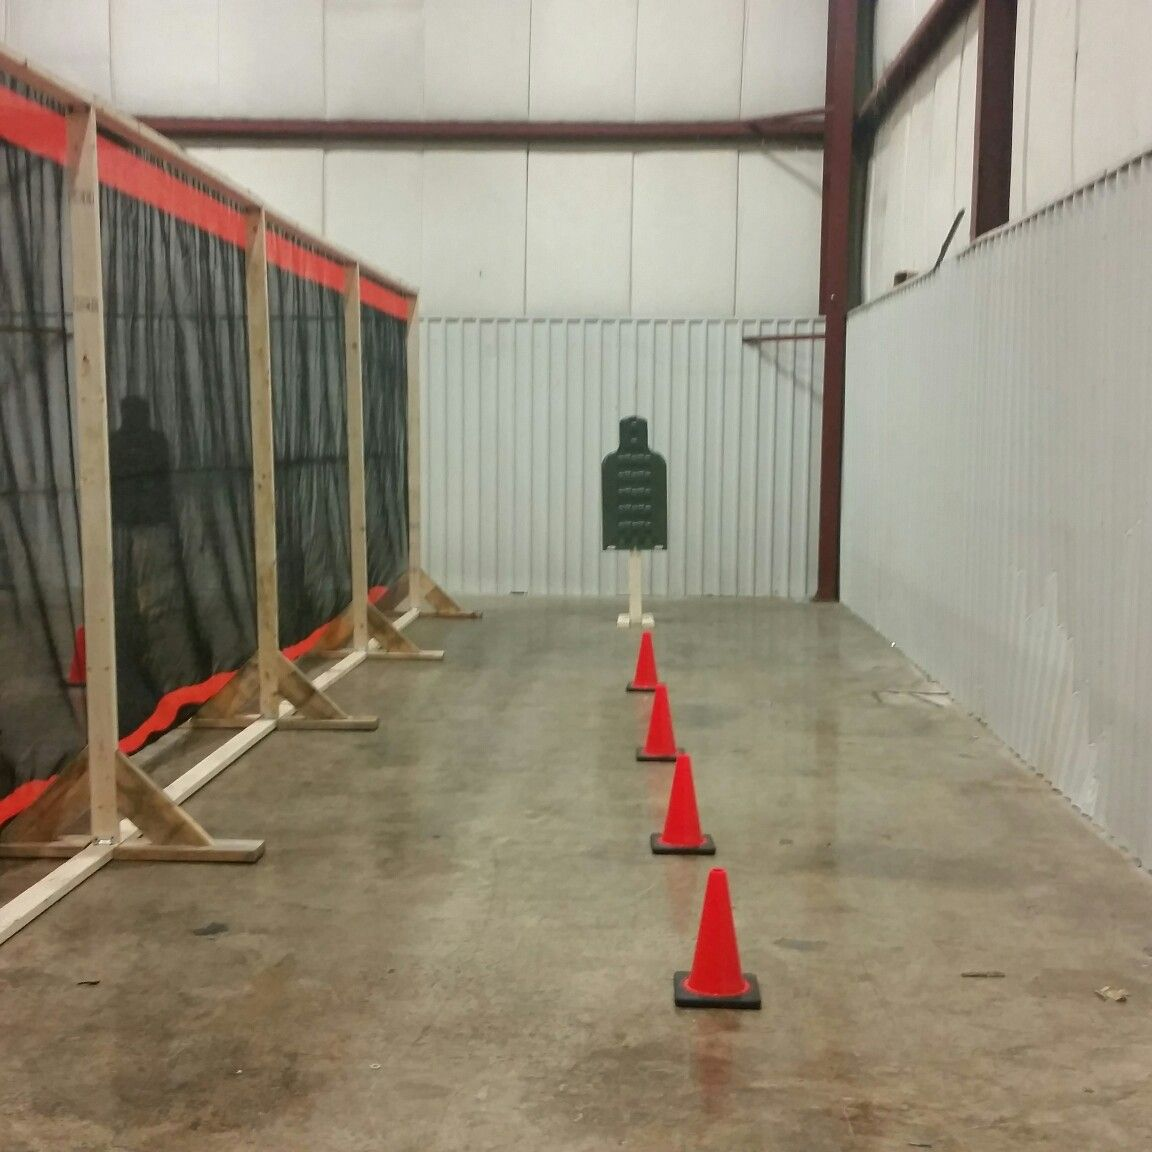 "45 Days to Grand Opening! Check us out on Facebook at ""Defensor Inc"" or our website at: www.DefensorInc.com"